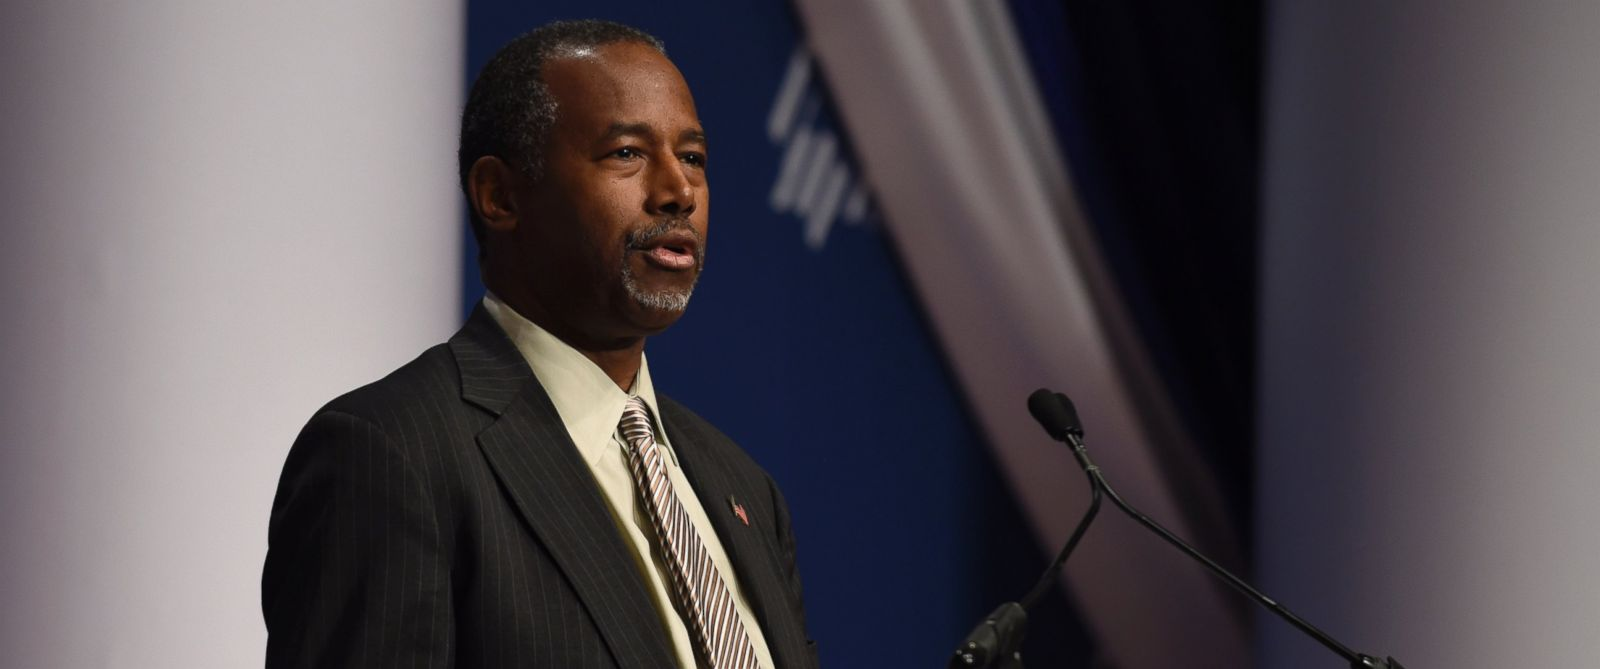 PHOTO: Republican presidential candidate Ben Carson speaks at the Republican Jewish Coalition Presidential Forum in Washington, Dec. 3, 2015.